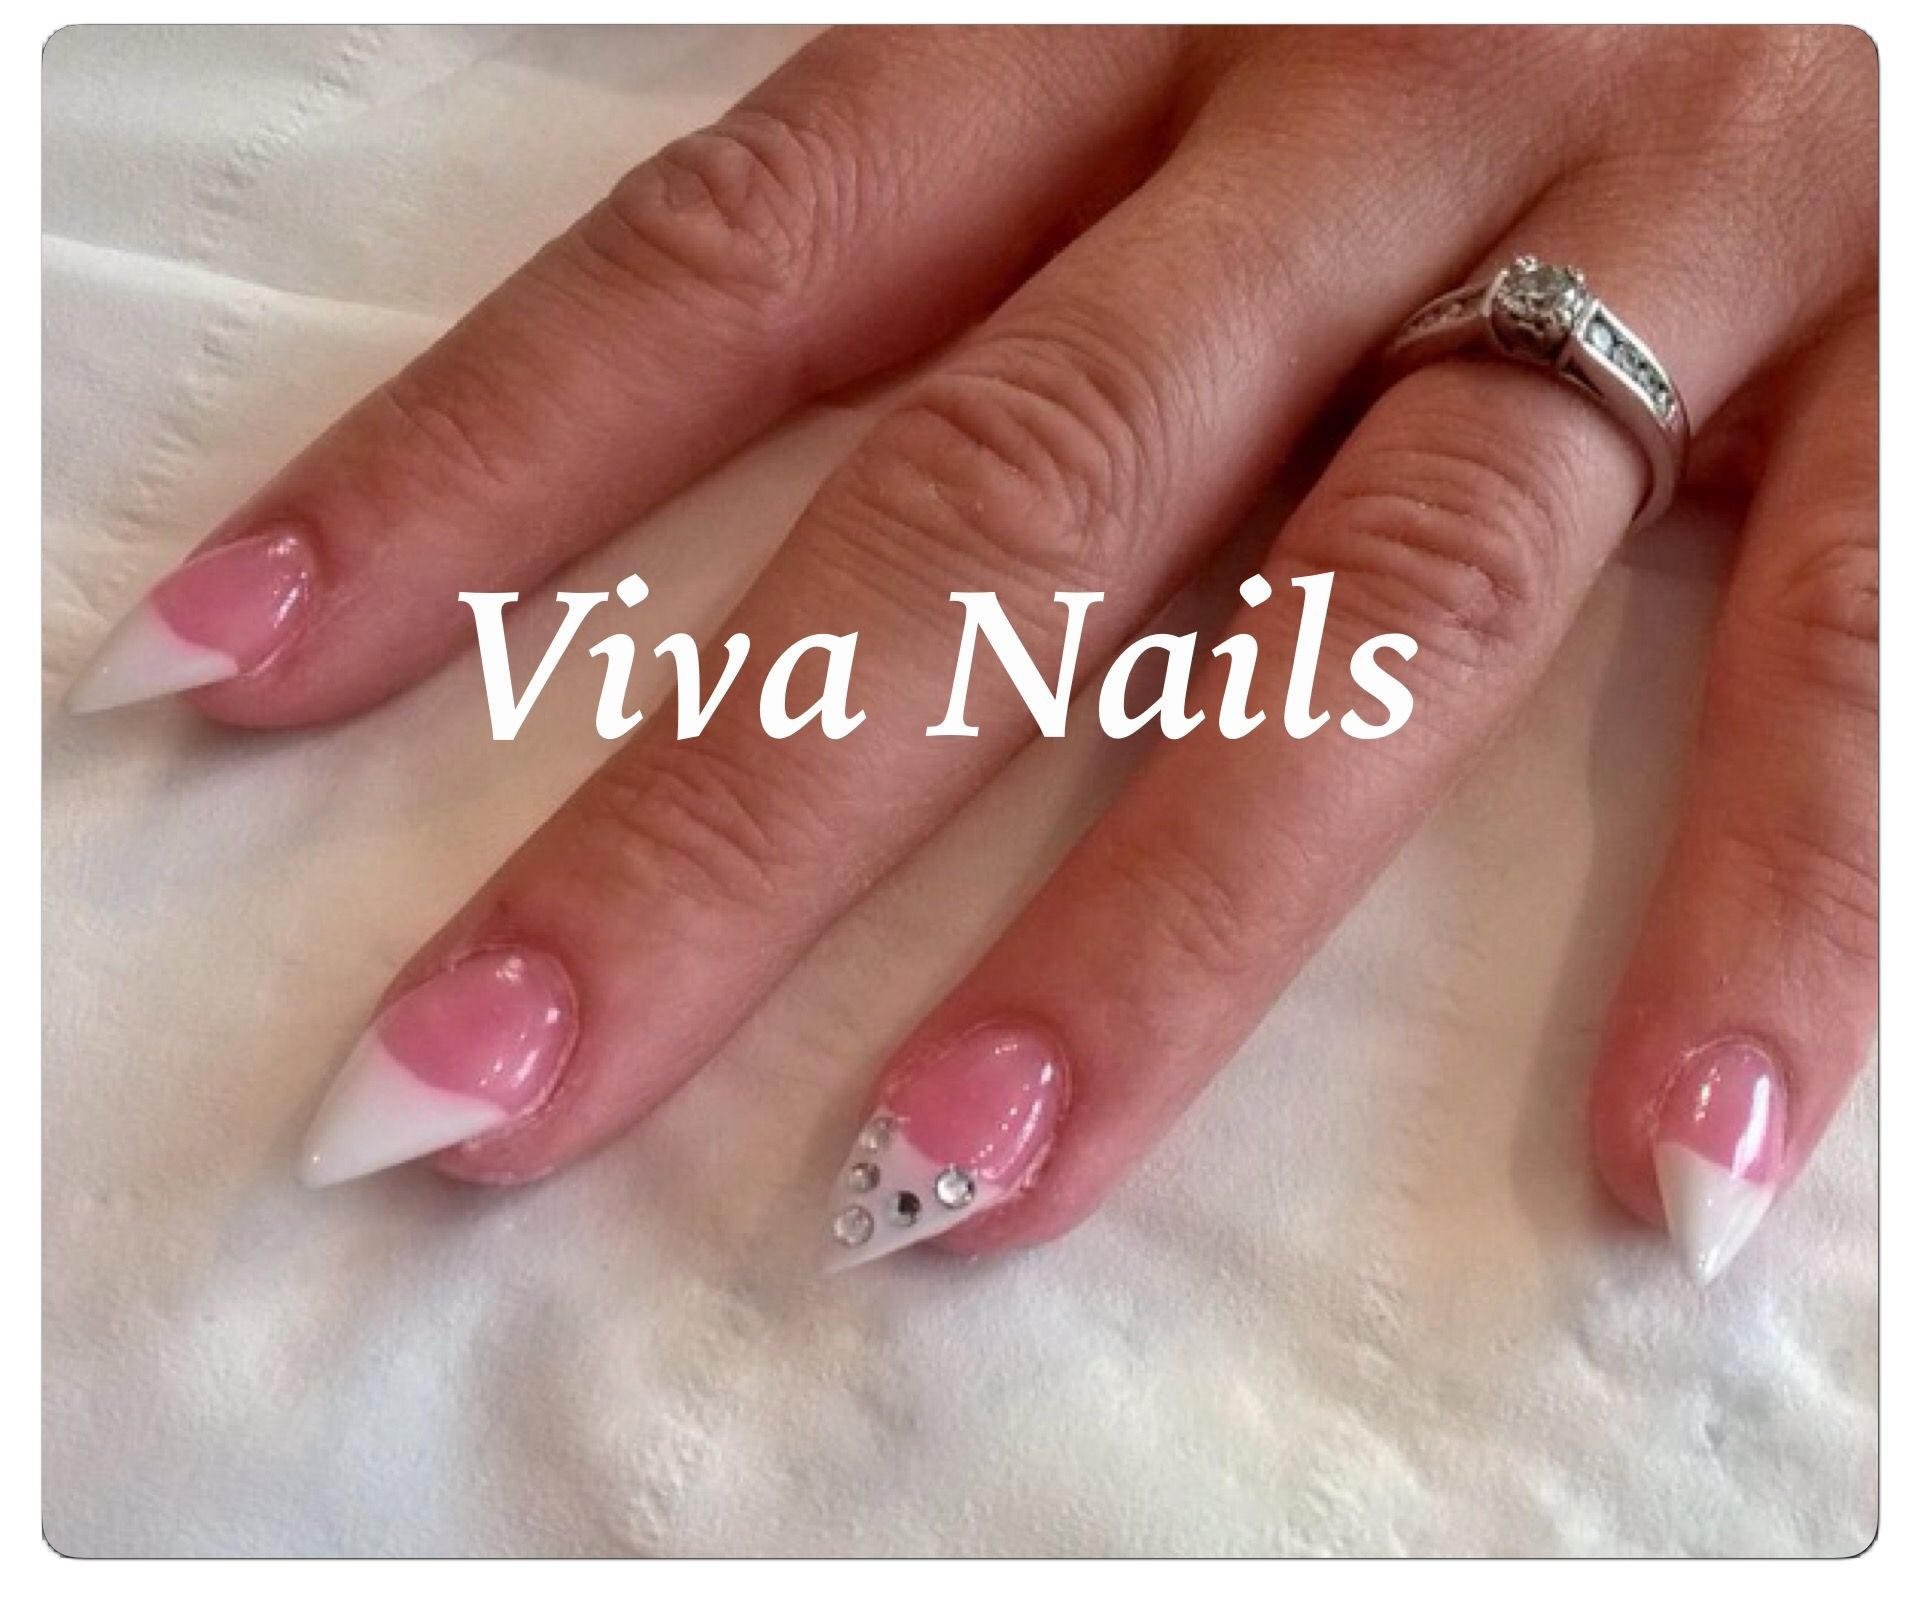 stiletto #acrylic #nails #diamonds #statementnail #vivanails ...